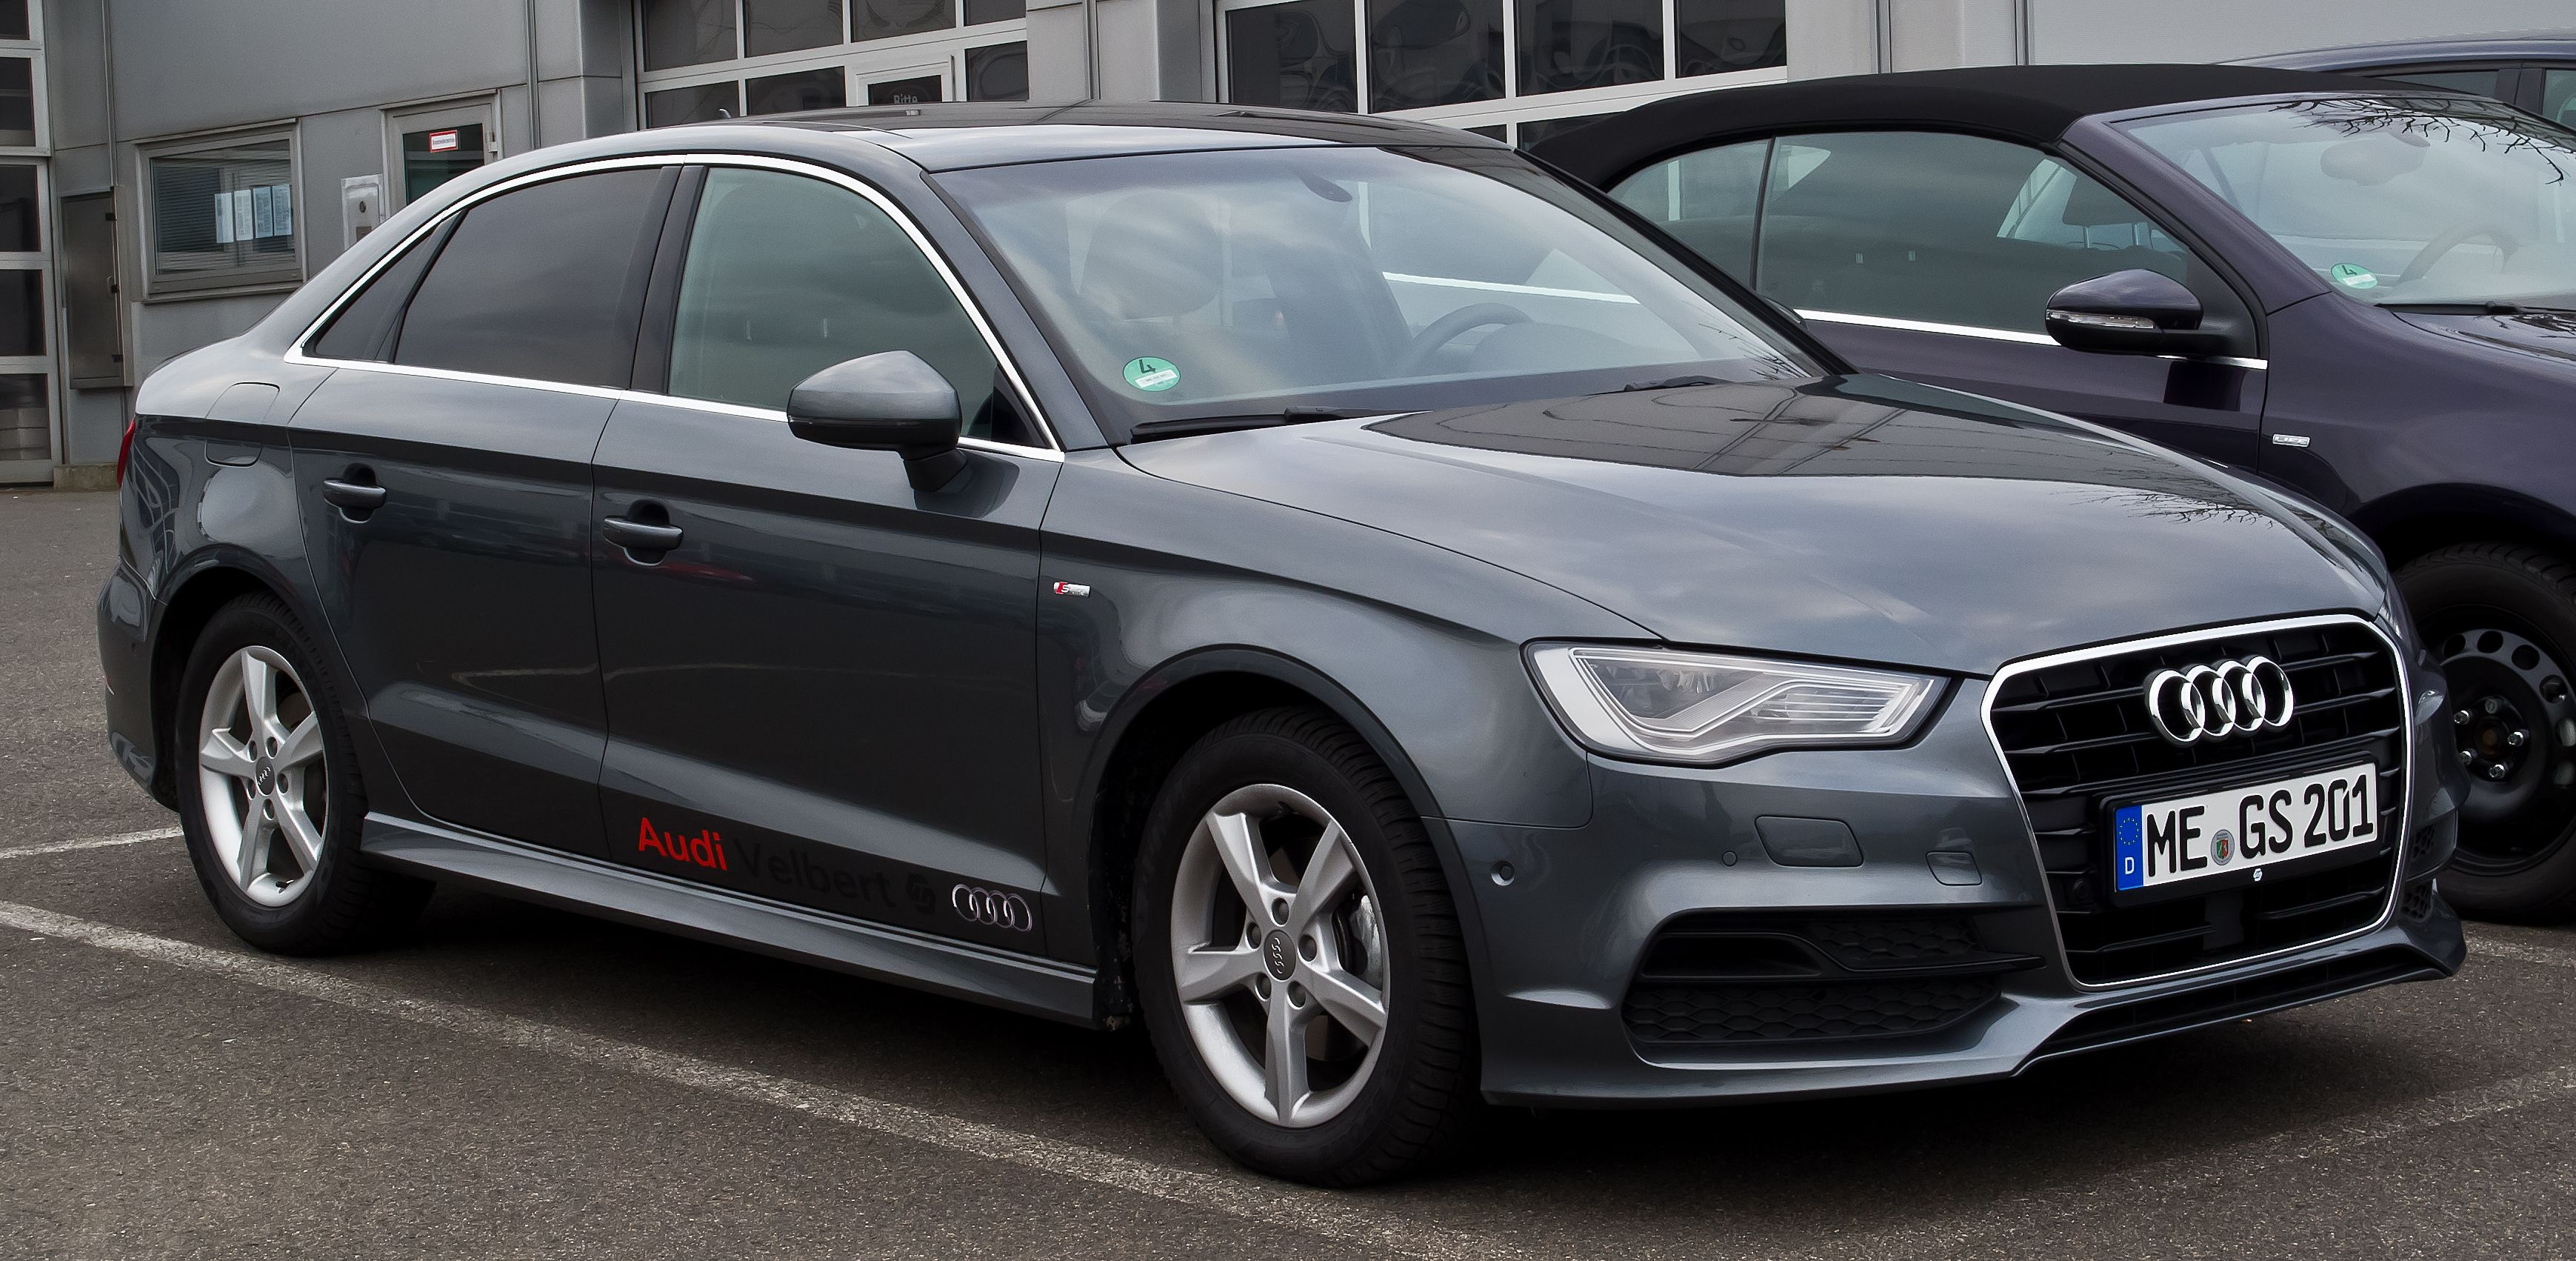 Each Week Well Be Testing Out Different Cars Available At Checkered - Checkered flag audi